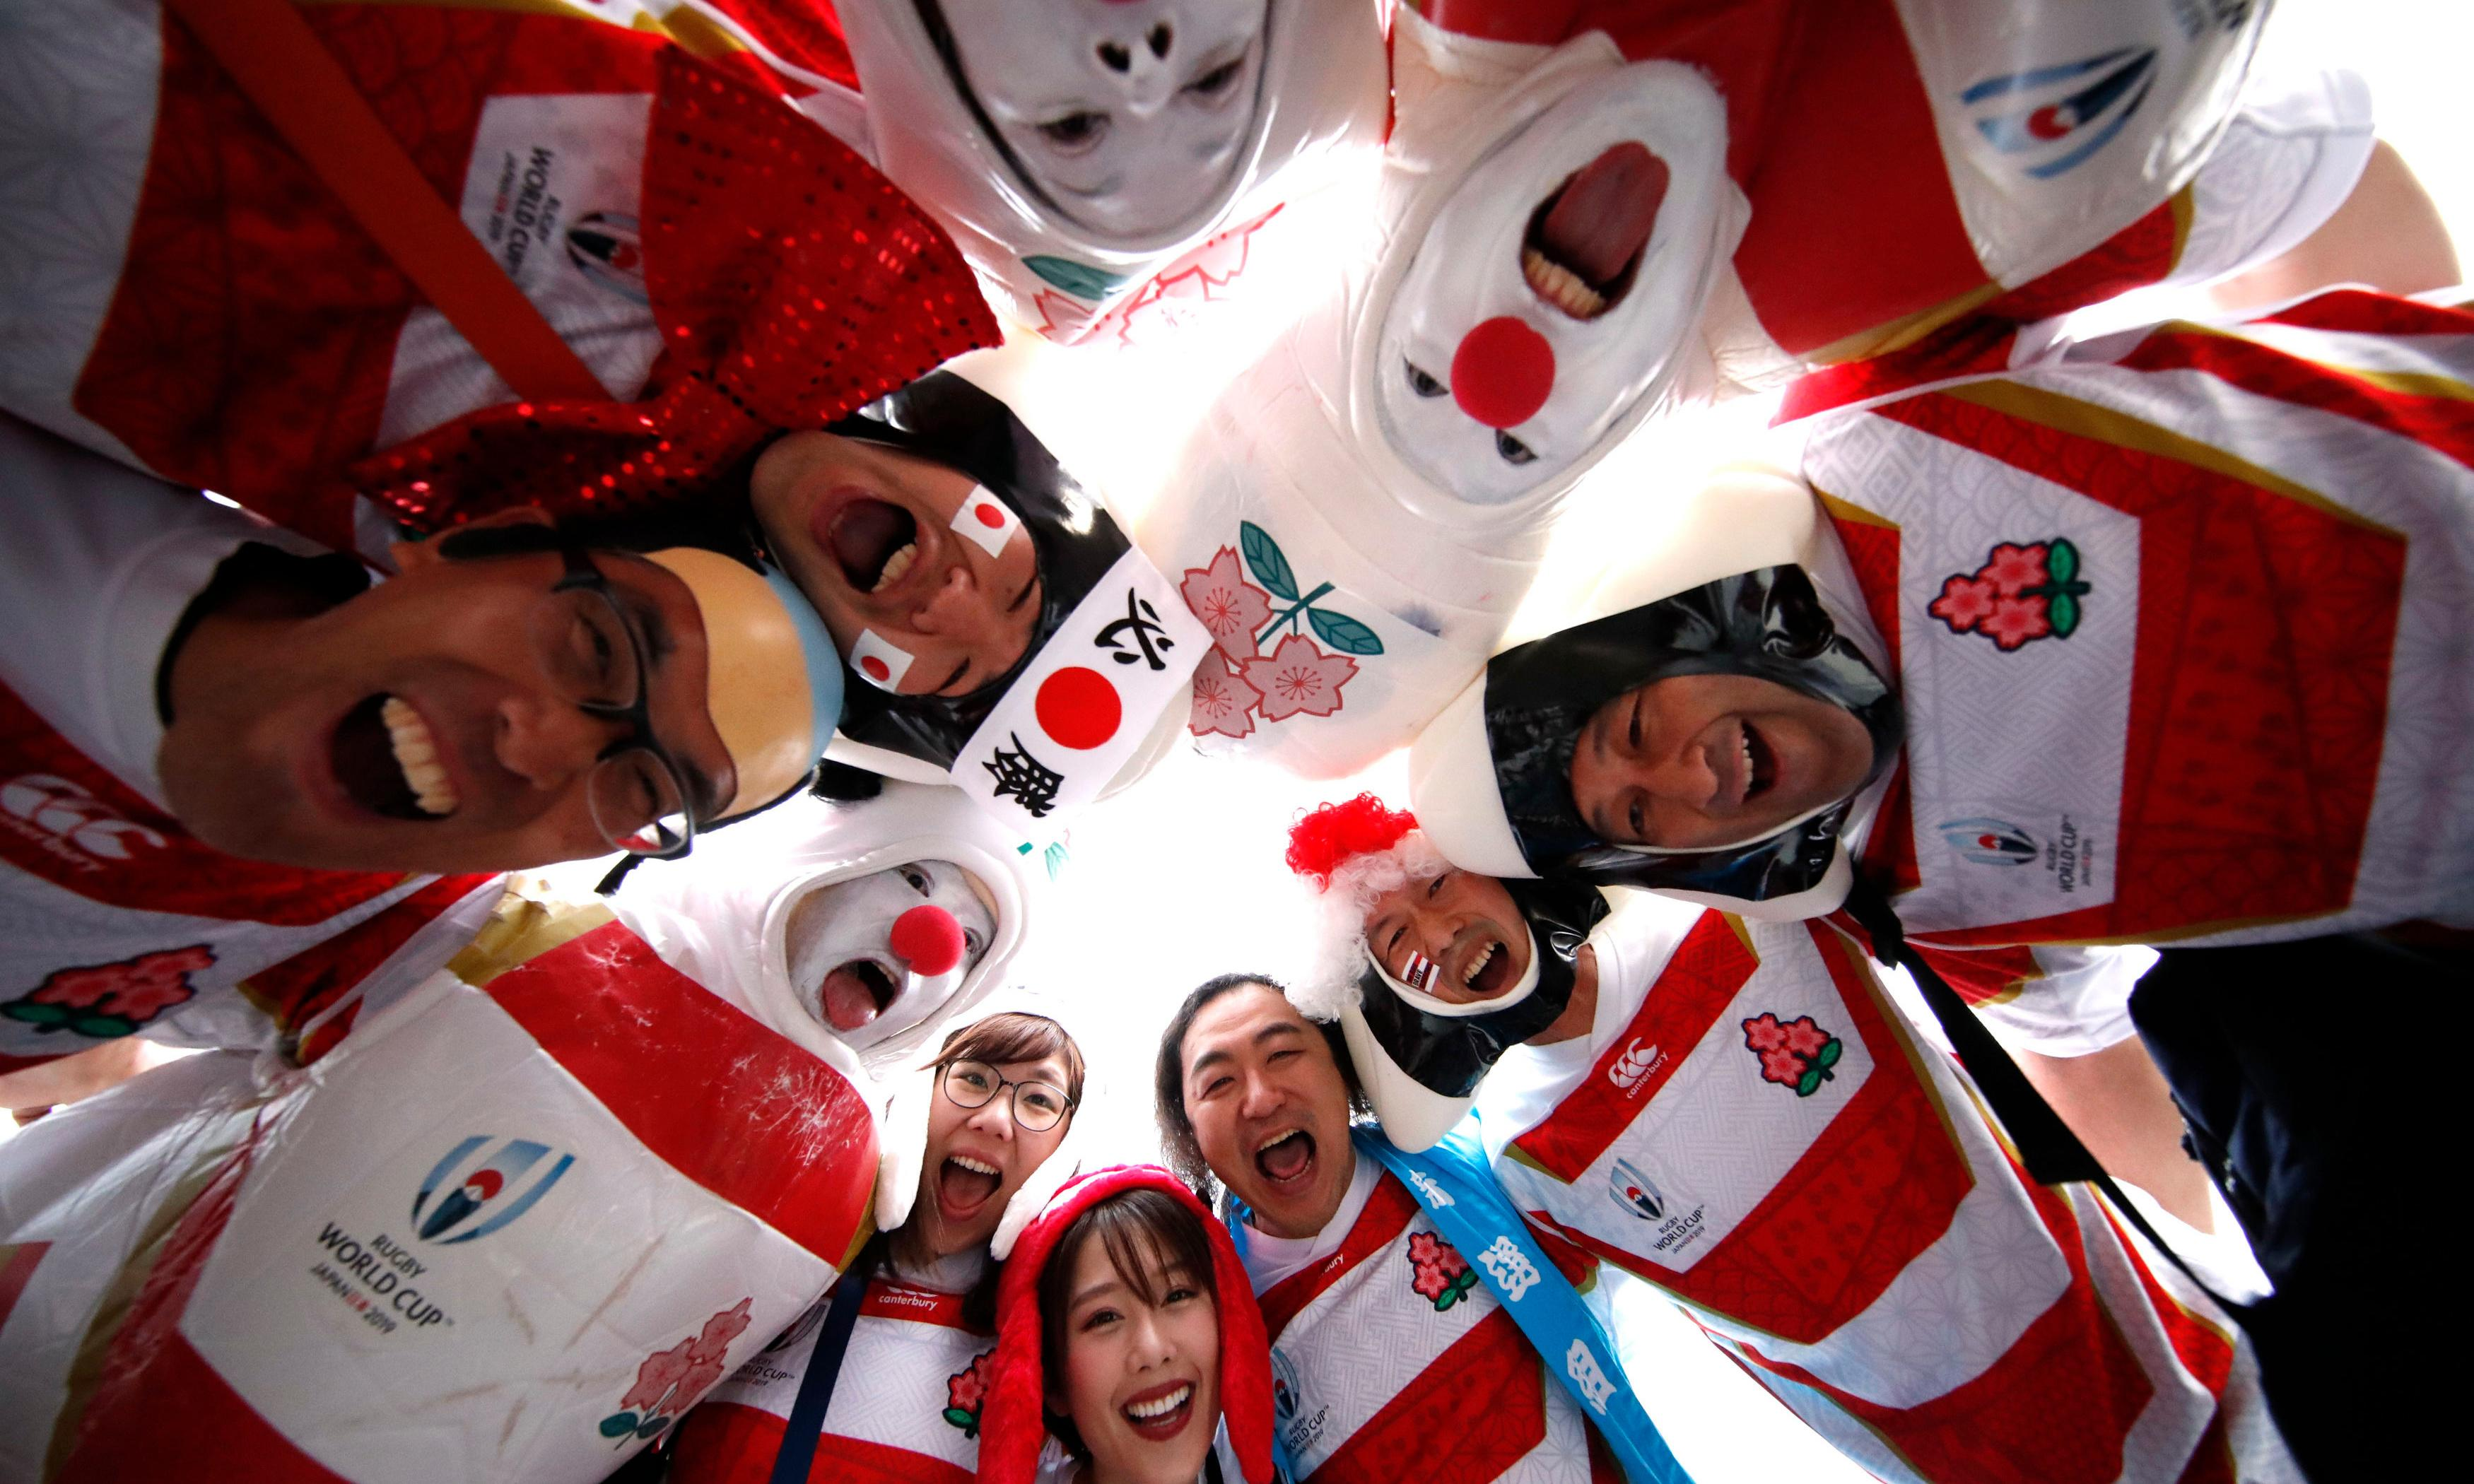 Joy and pride stirred by Japan is real value of this Rugby World Cup